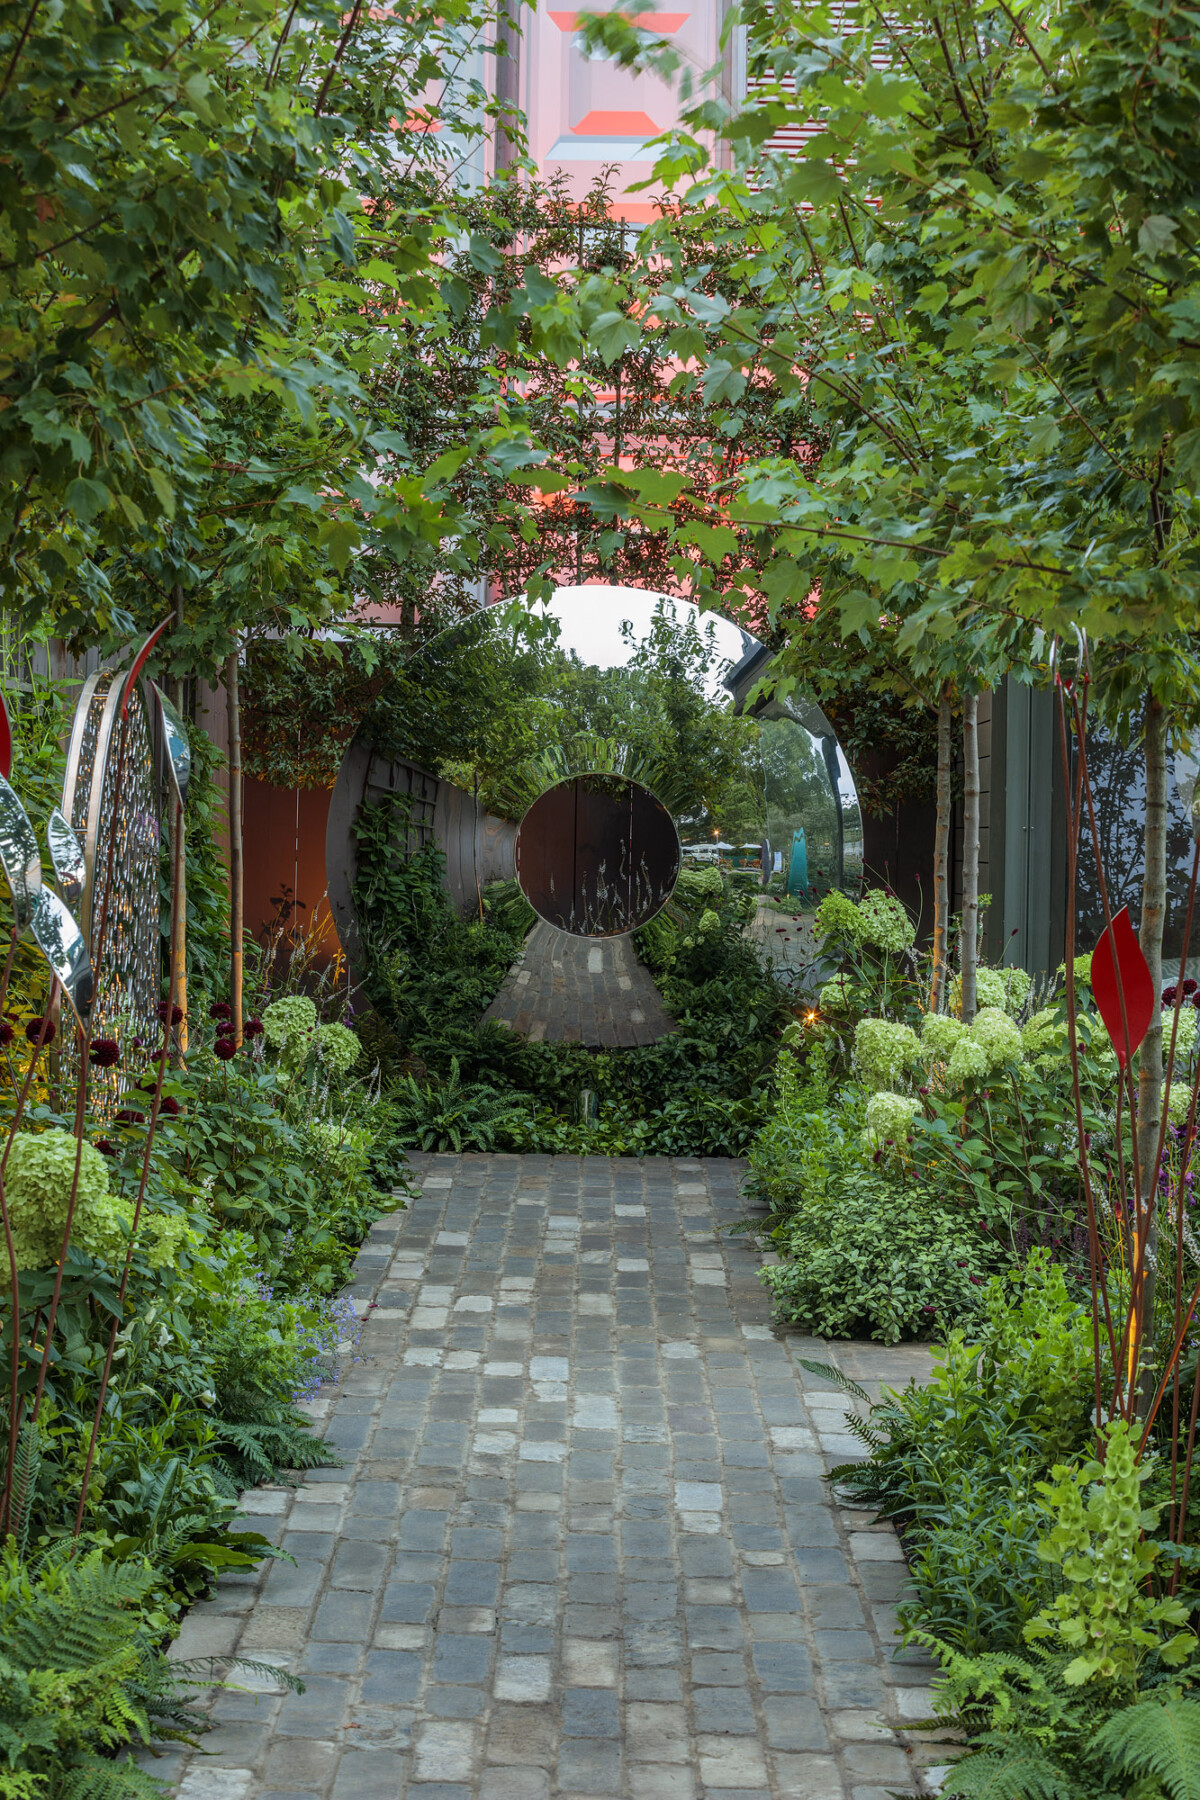 Nicholsons Trade Stand RHS Chelsea Flower Show